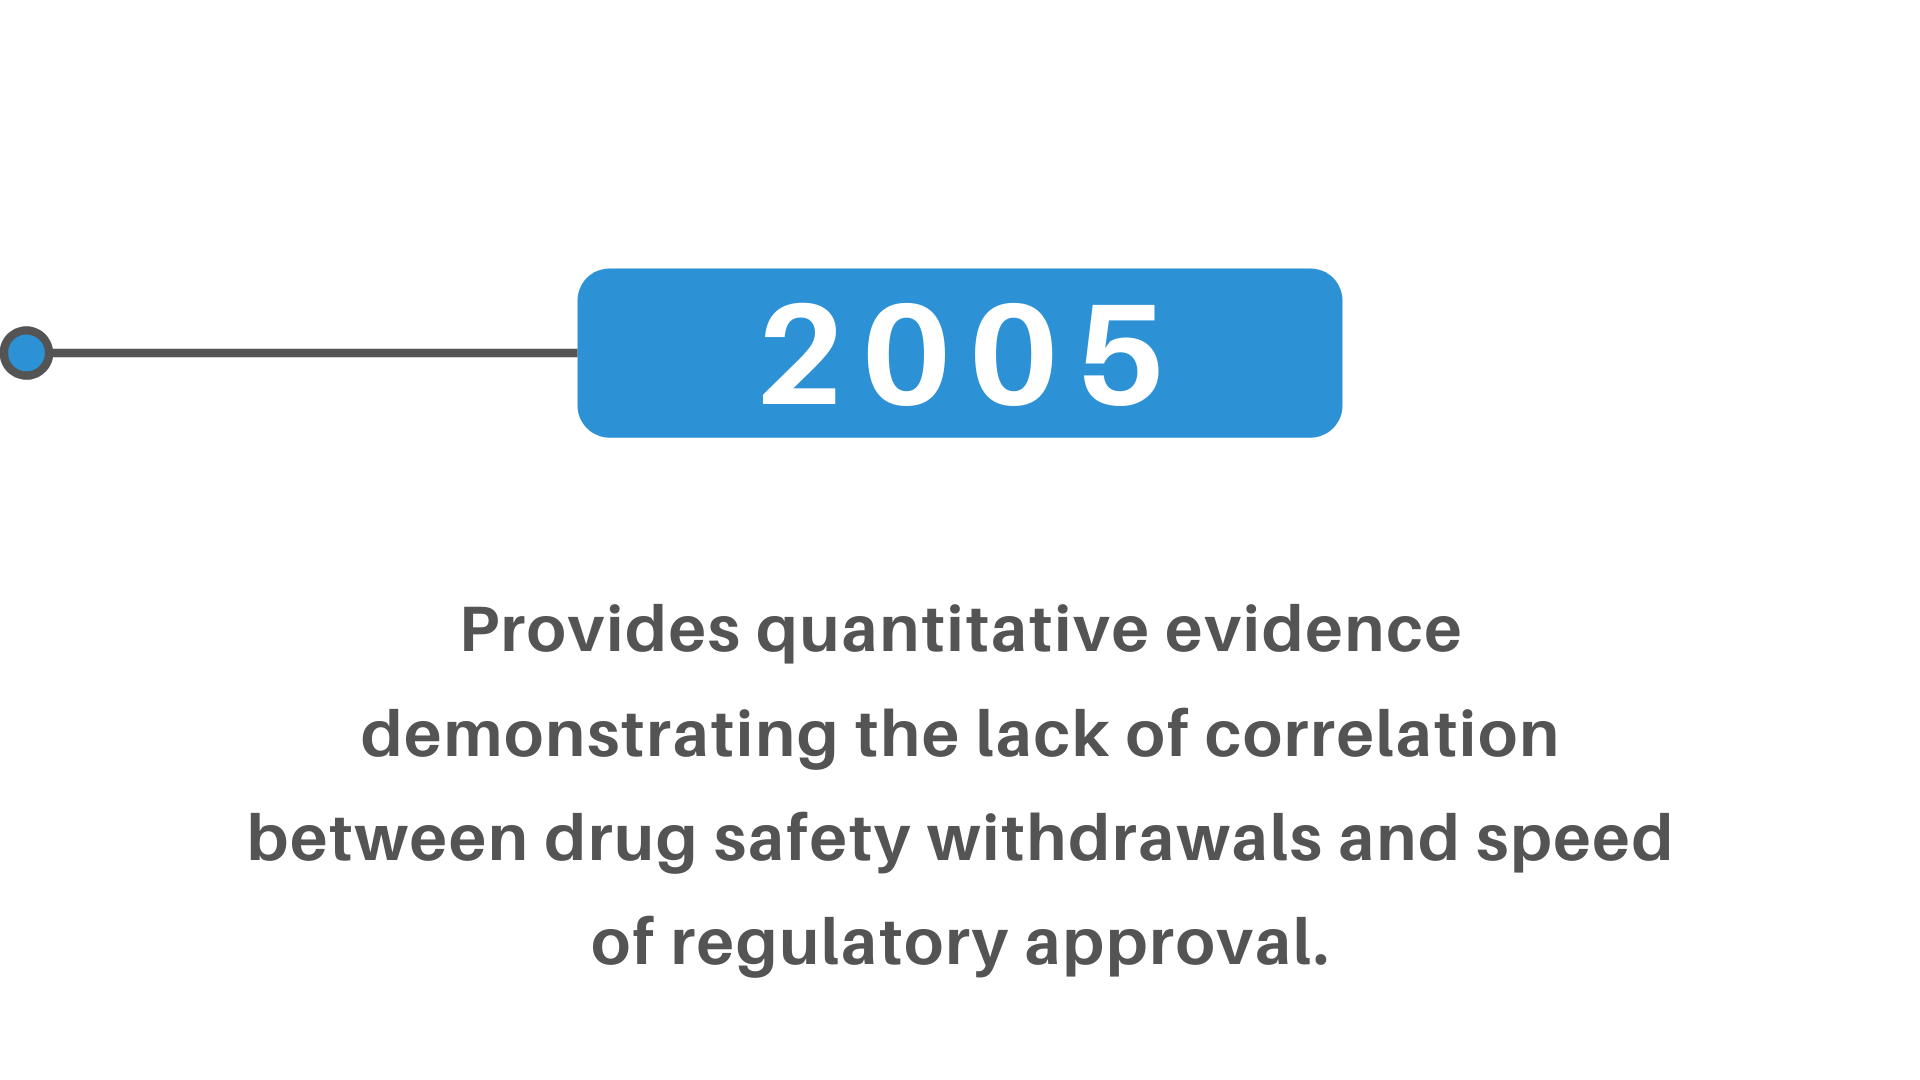 drug safety withdrawals speed regulatory approval lack of correlation